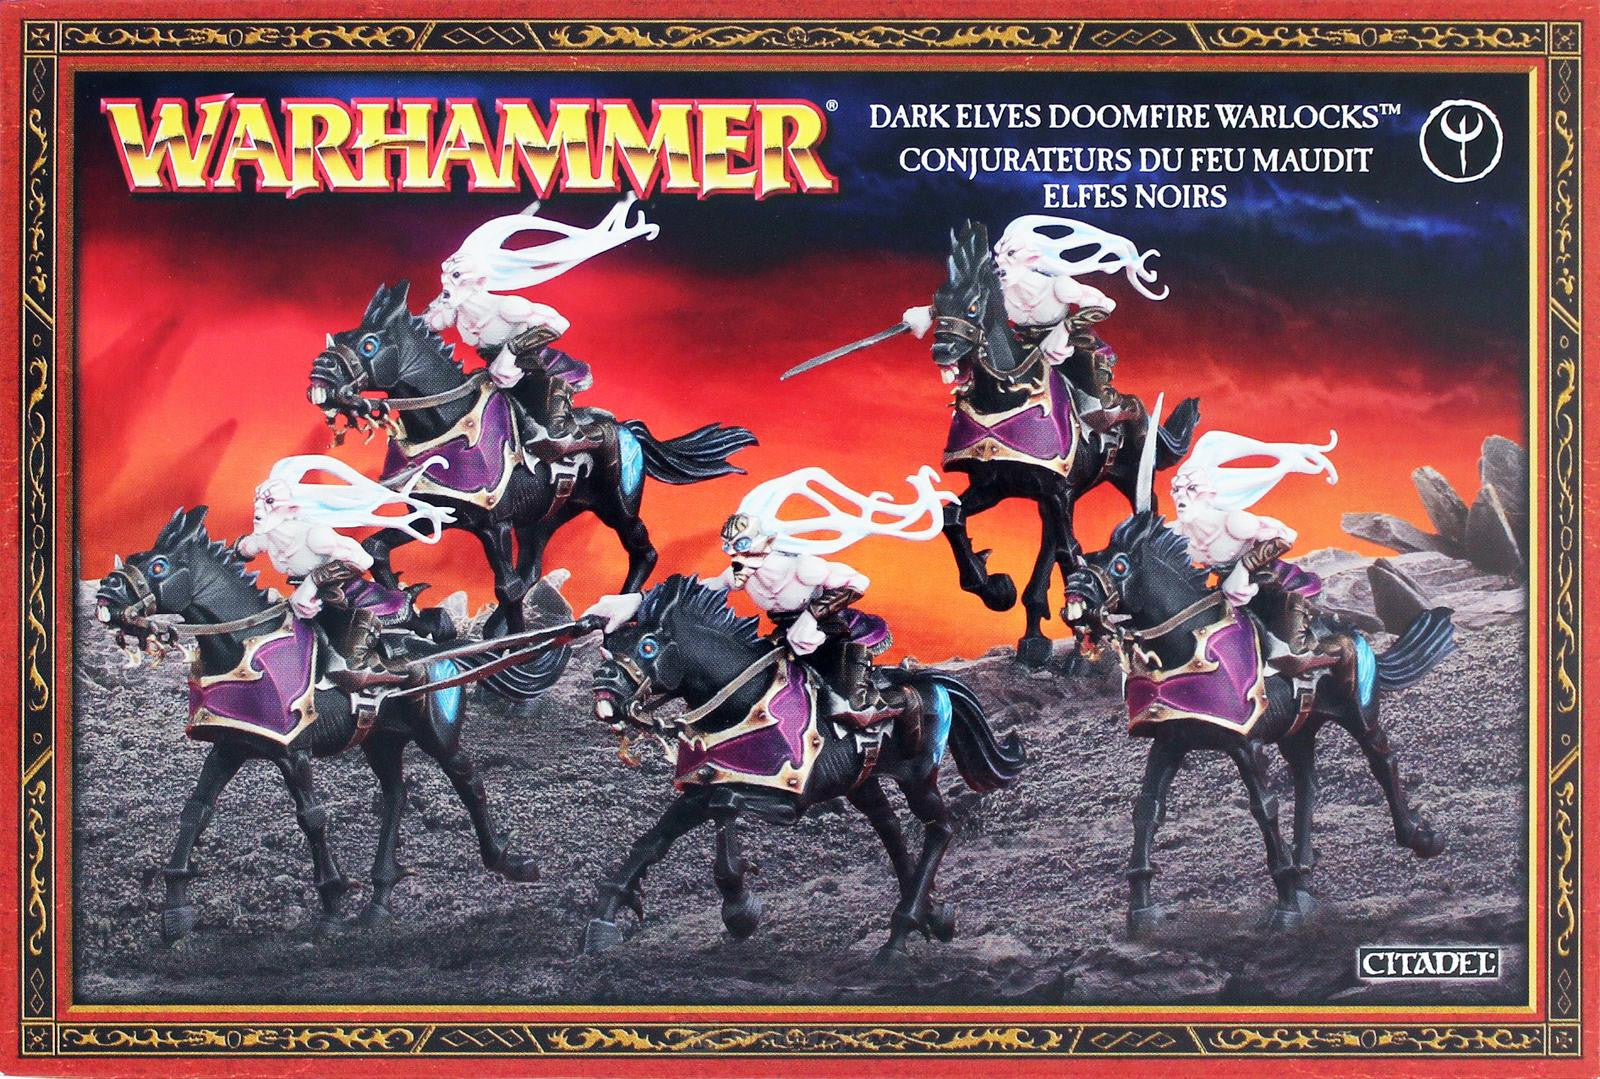 Warhammer: Dark Elves Doomfire Warlocks-Miniatures-Multizone: Comics And Games | Multizone: Comics And Games